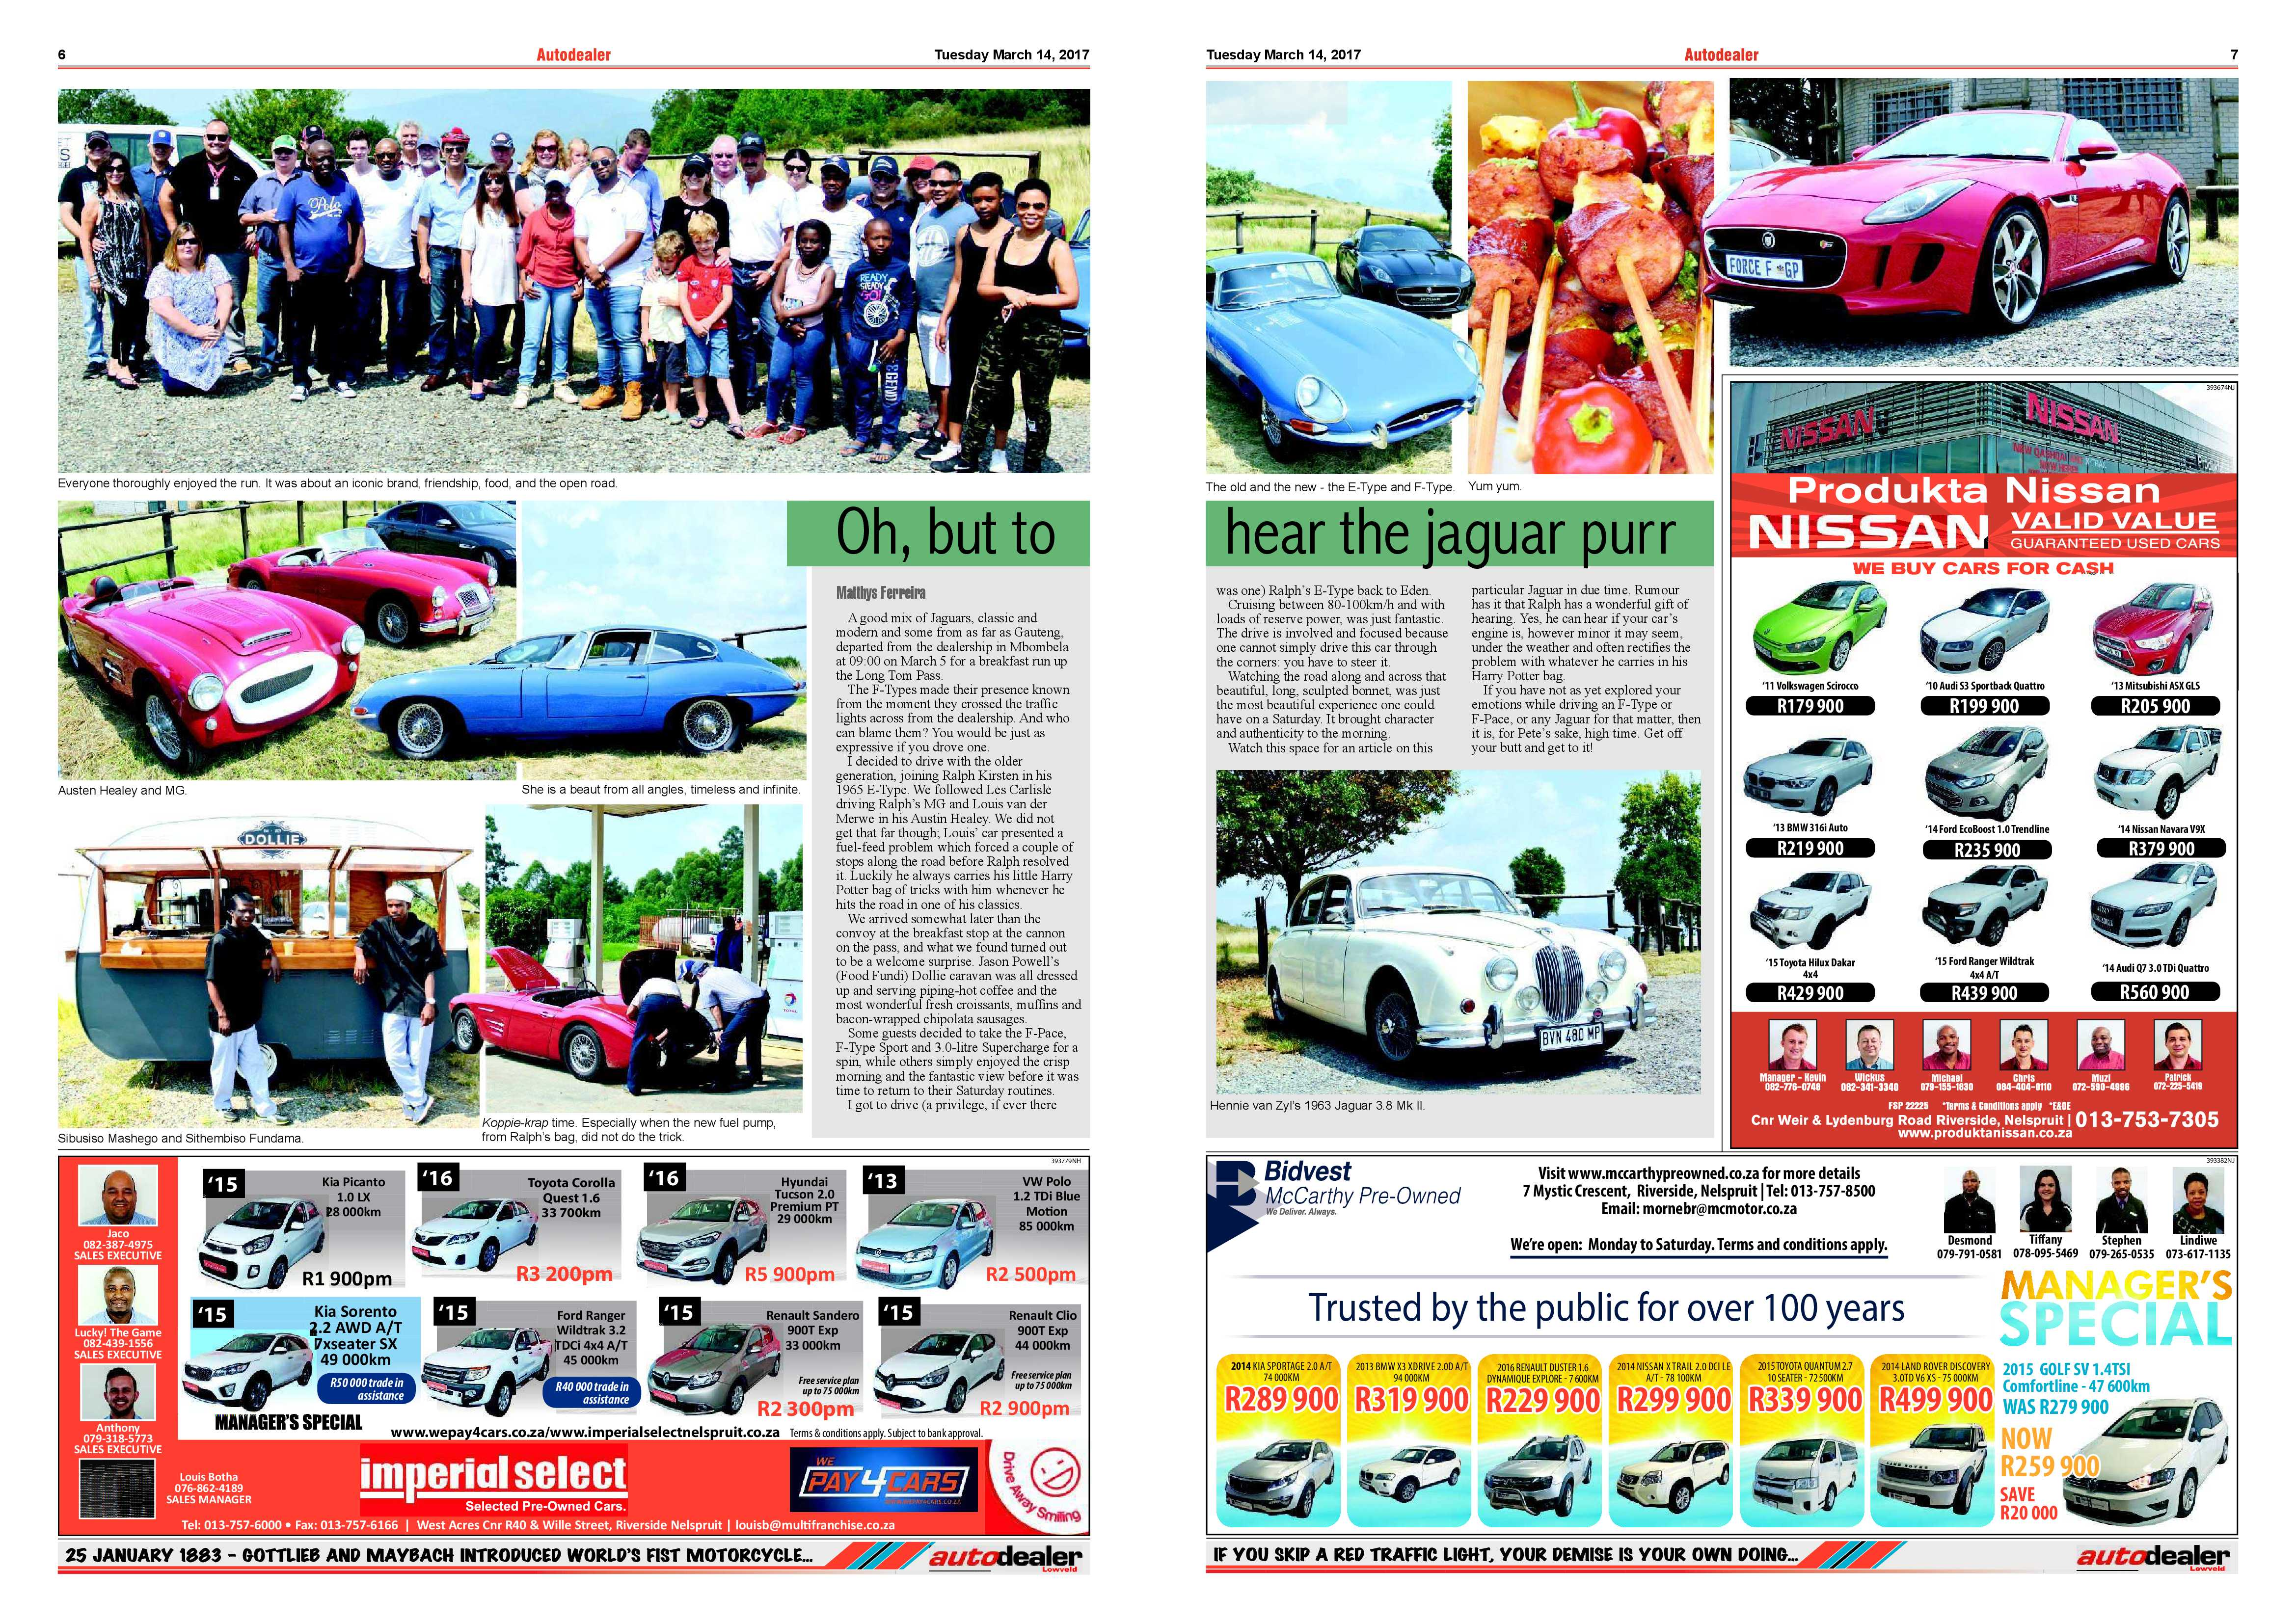 autodealer-14-march-epapers-page-5